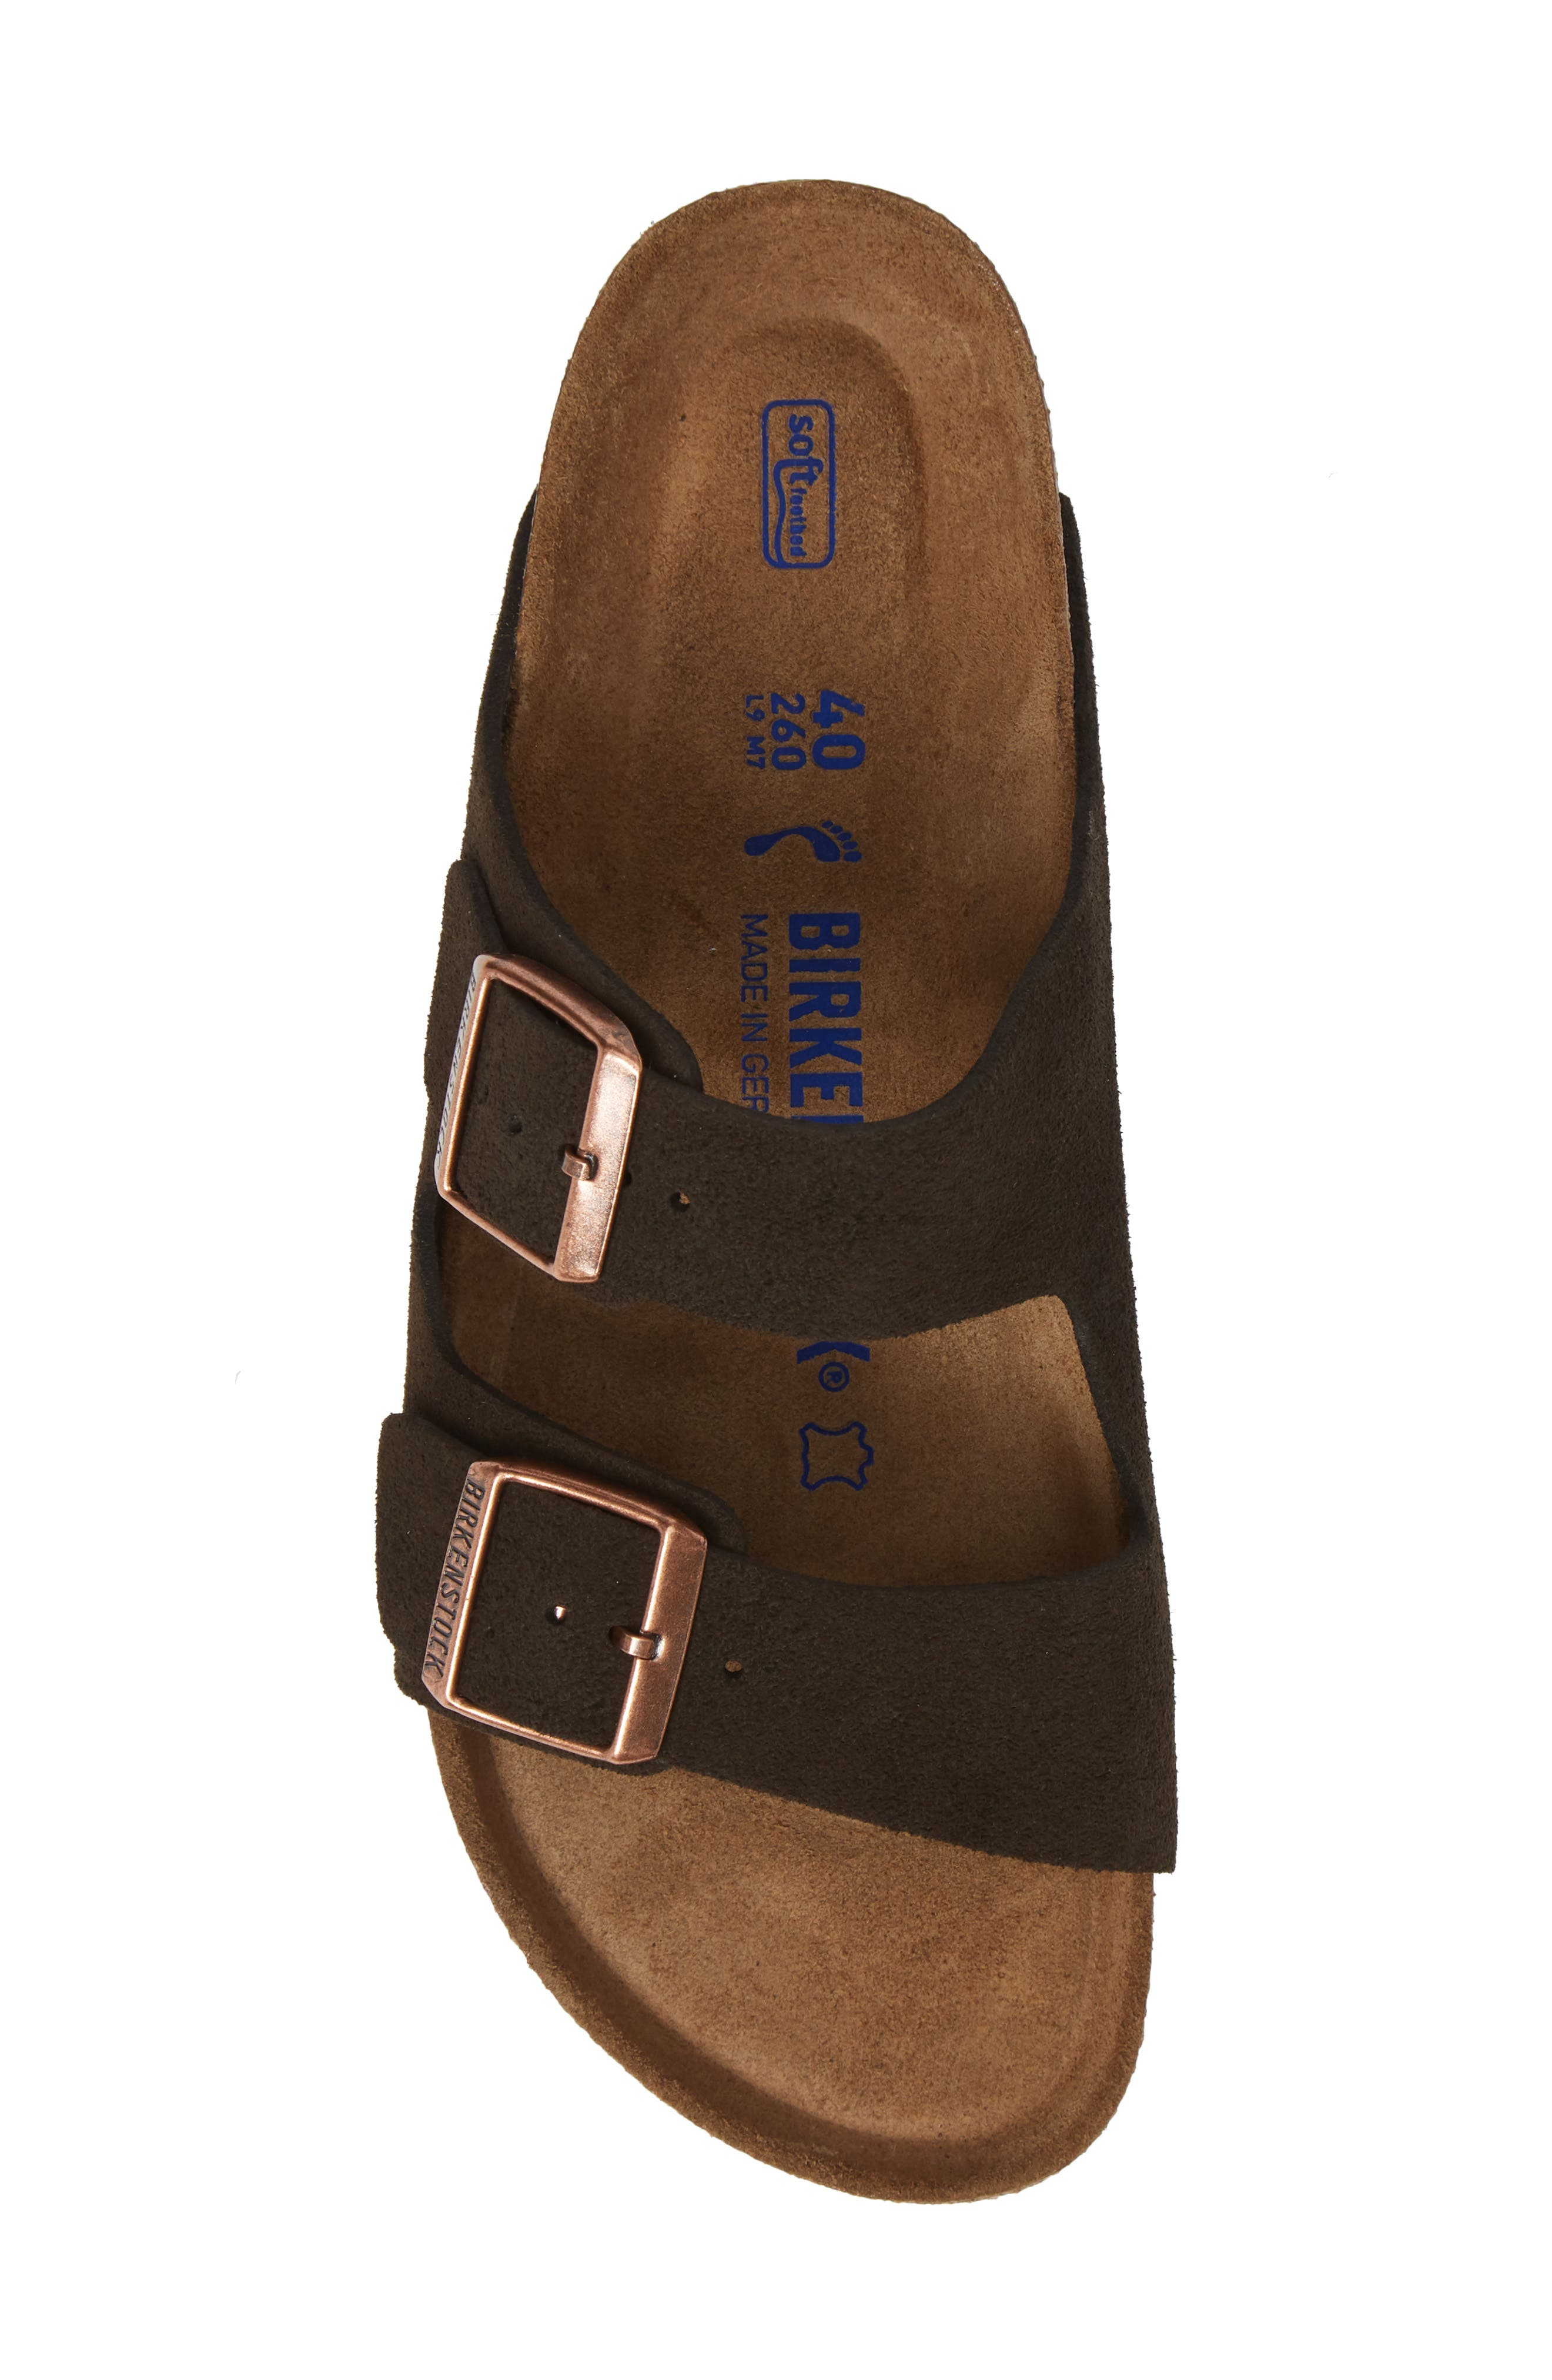 'Arizona' Soft Footbed Suede Sandal,                             Alternate thumbnail 5, color,                             MOCHA SUEDE